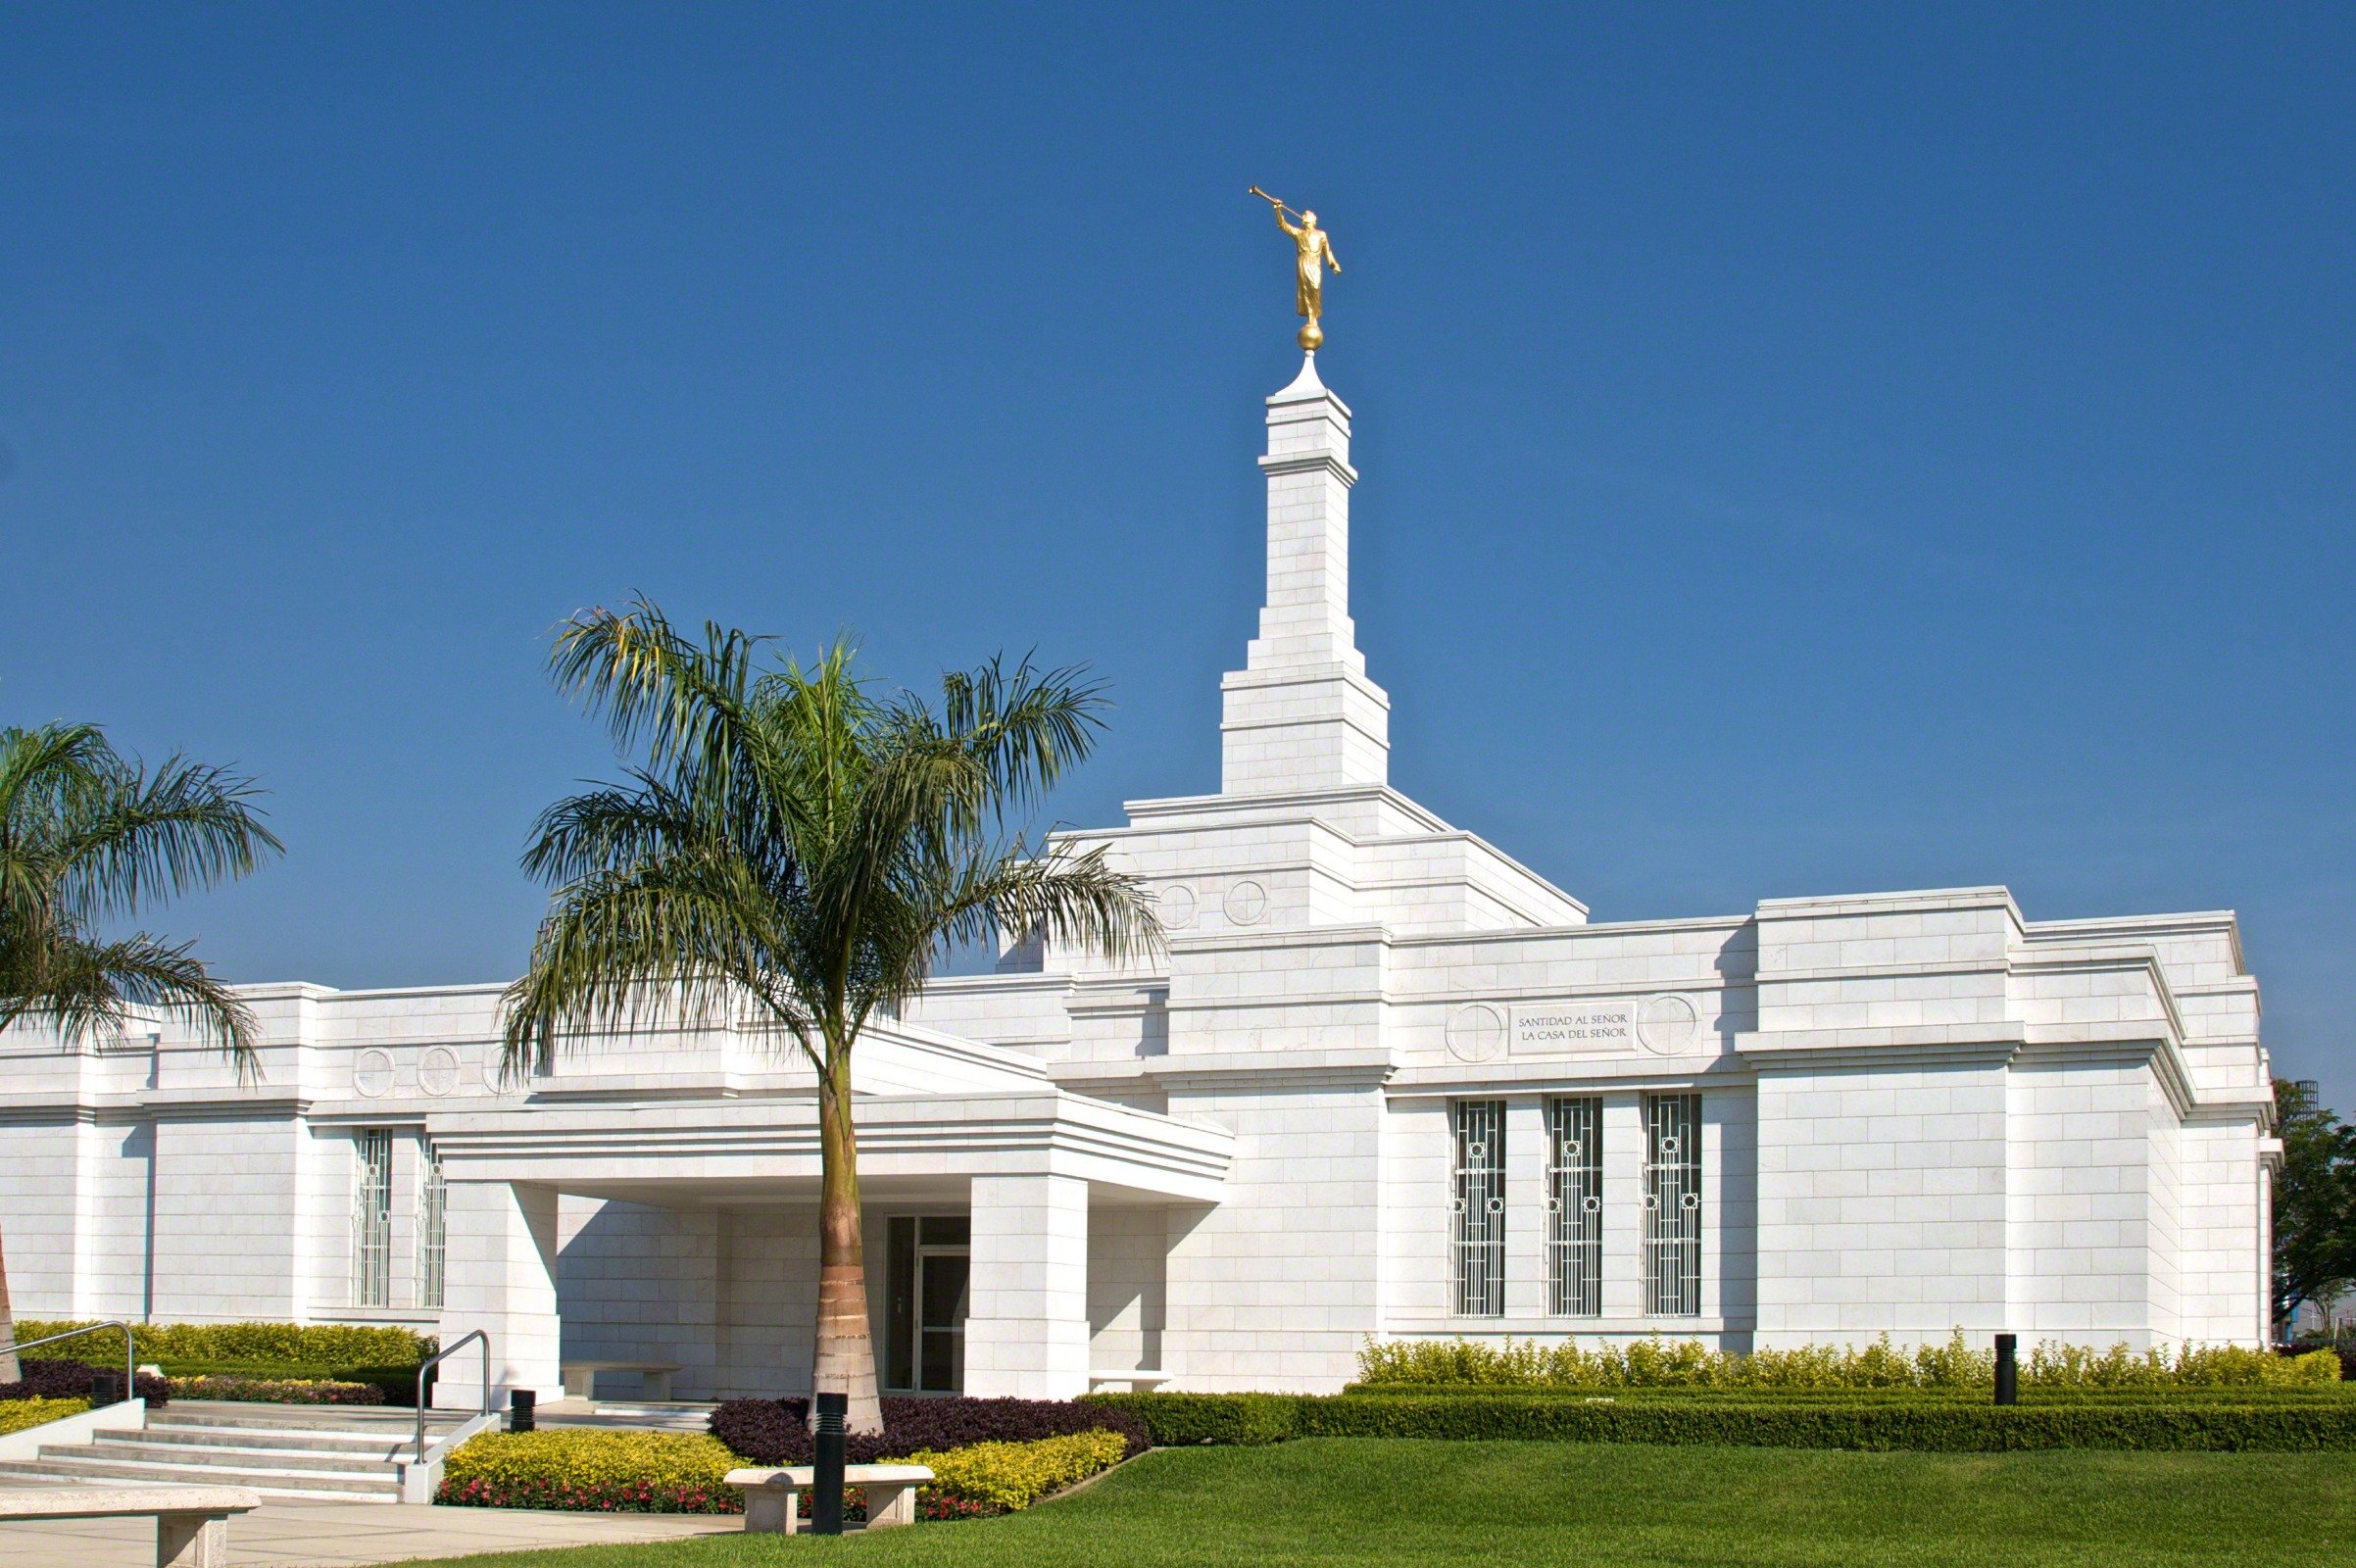 The Church of Jesus Christ of Latter-day Saints - Renton WA | 816 Field Ave NE, Renton, WA, 98059 | +1 (425) 430-6129